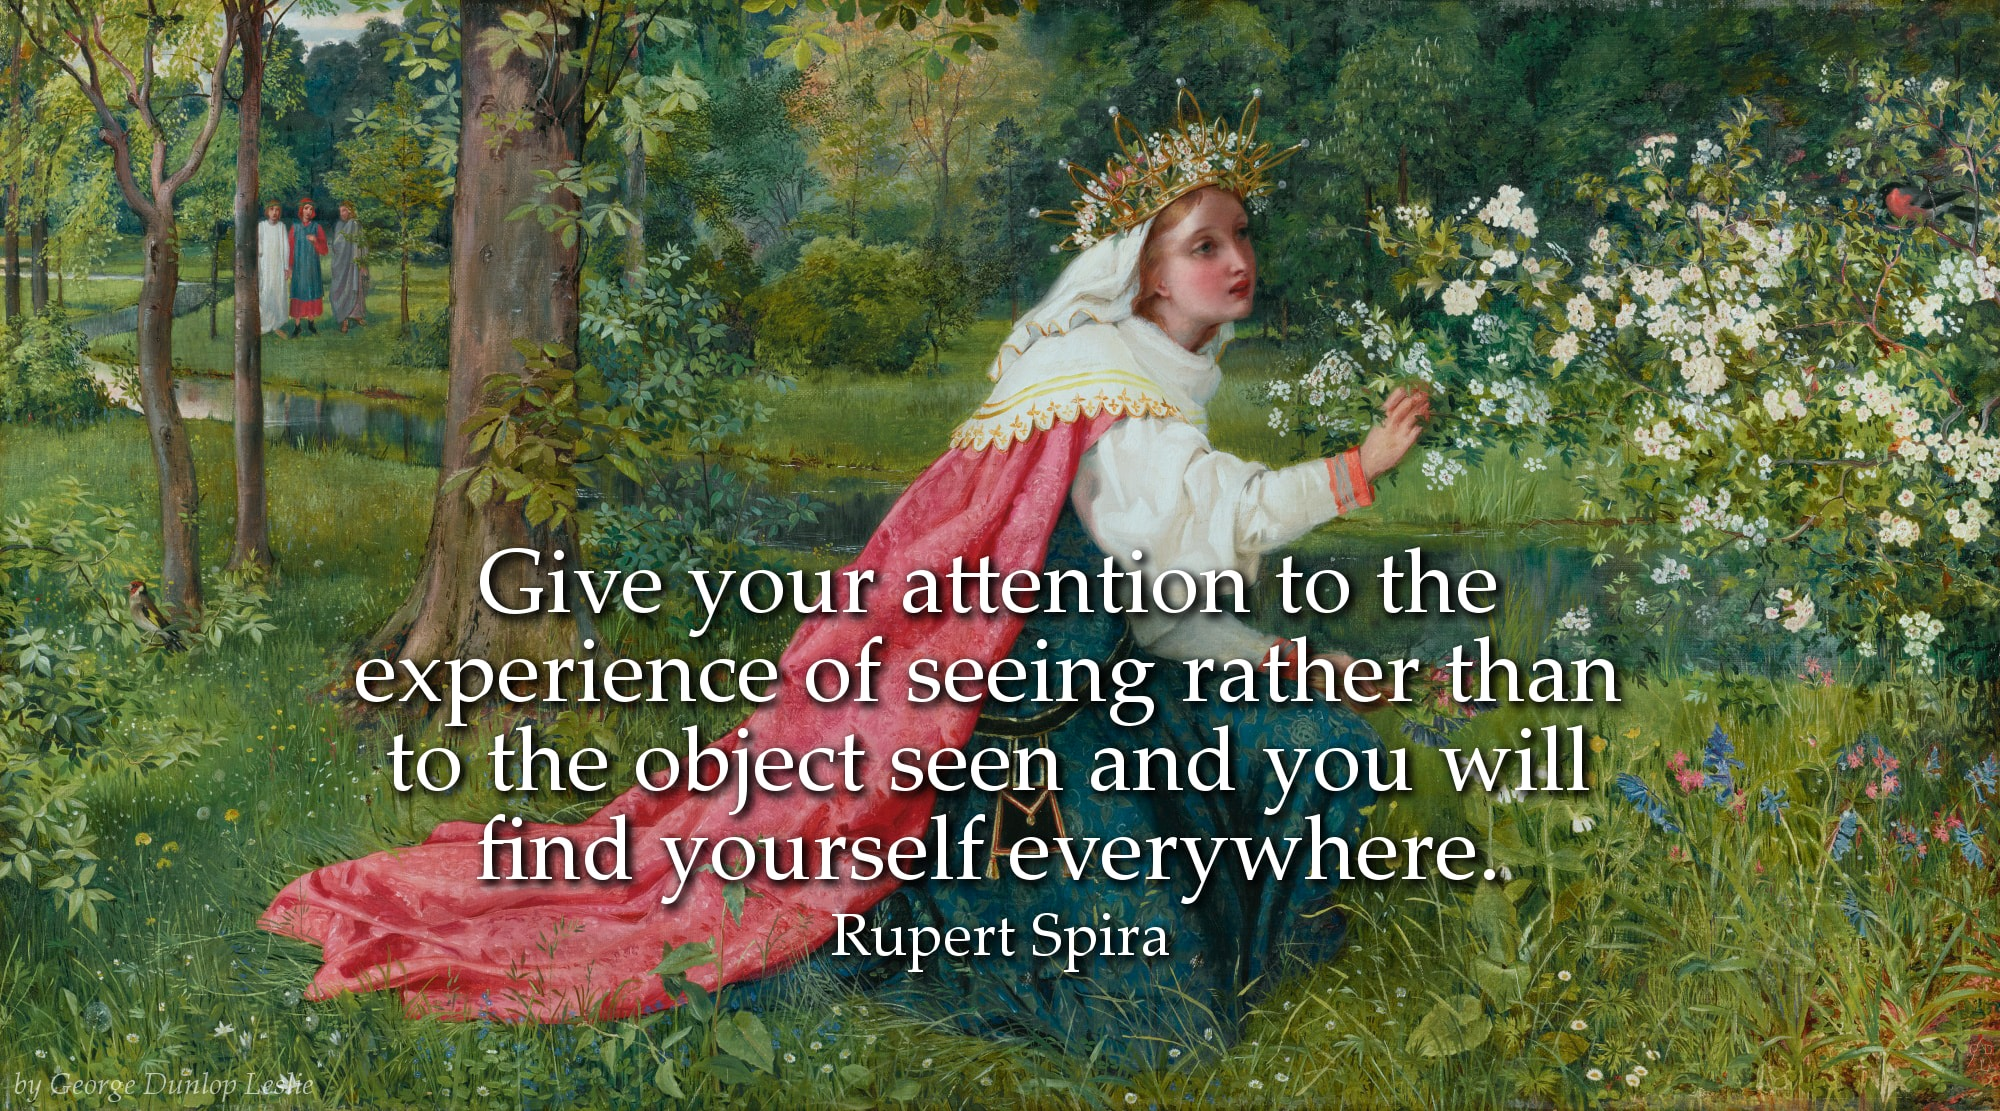 Rupert Spira Quote: Give your attention to the experience of seeing rather than to the object...